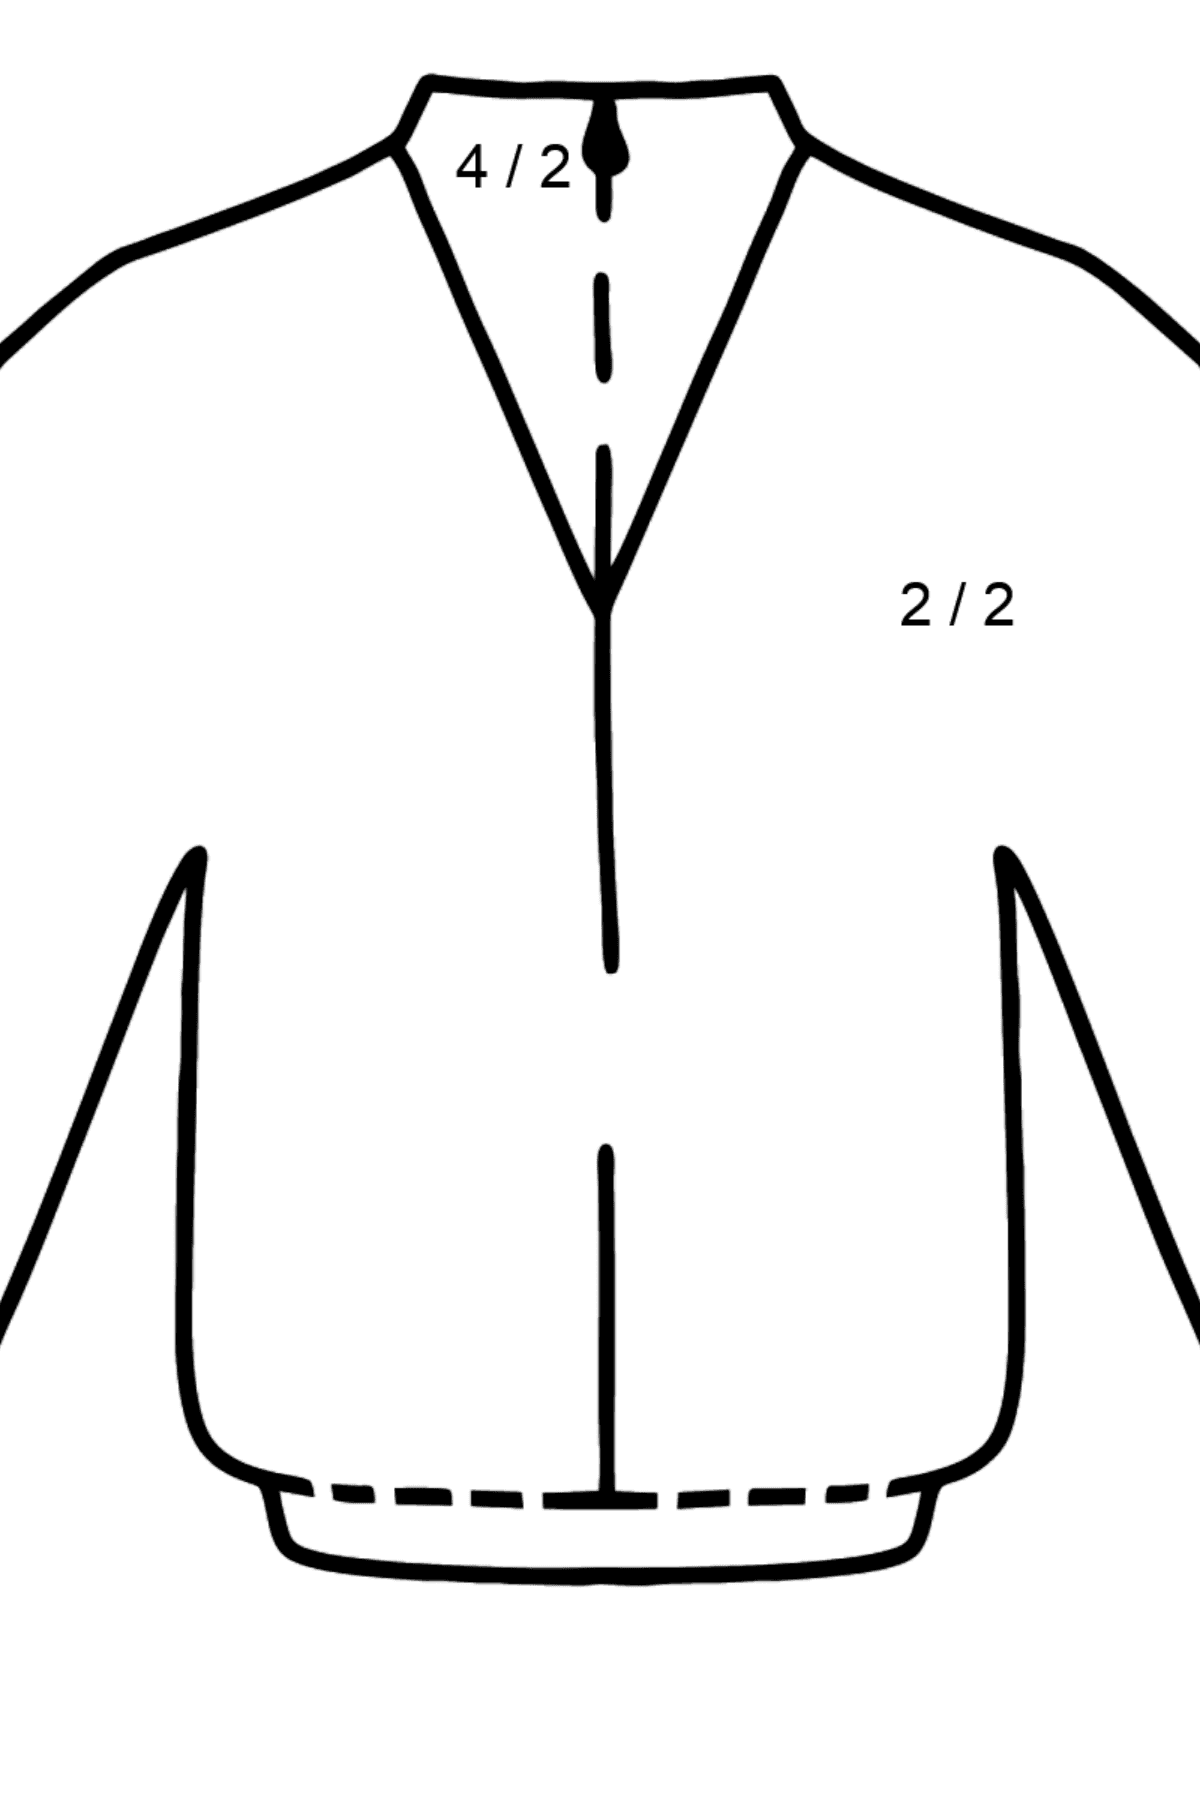 Blue Jacket coloring page - Math Coloring - Division for Kids